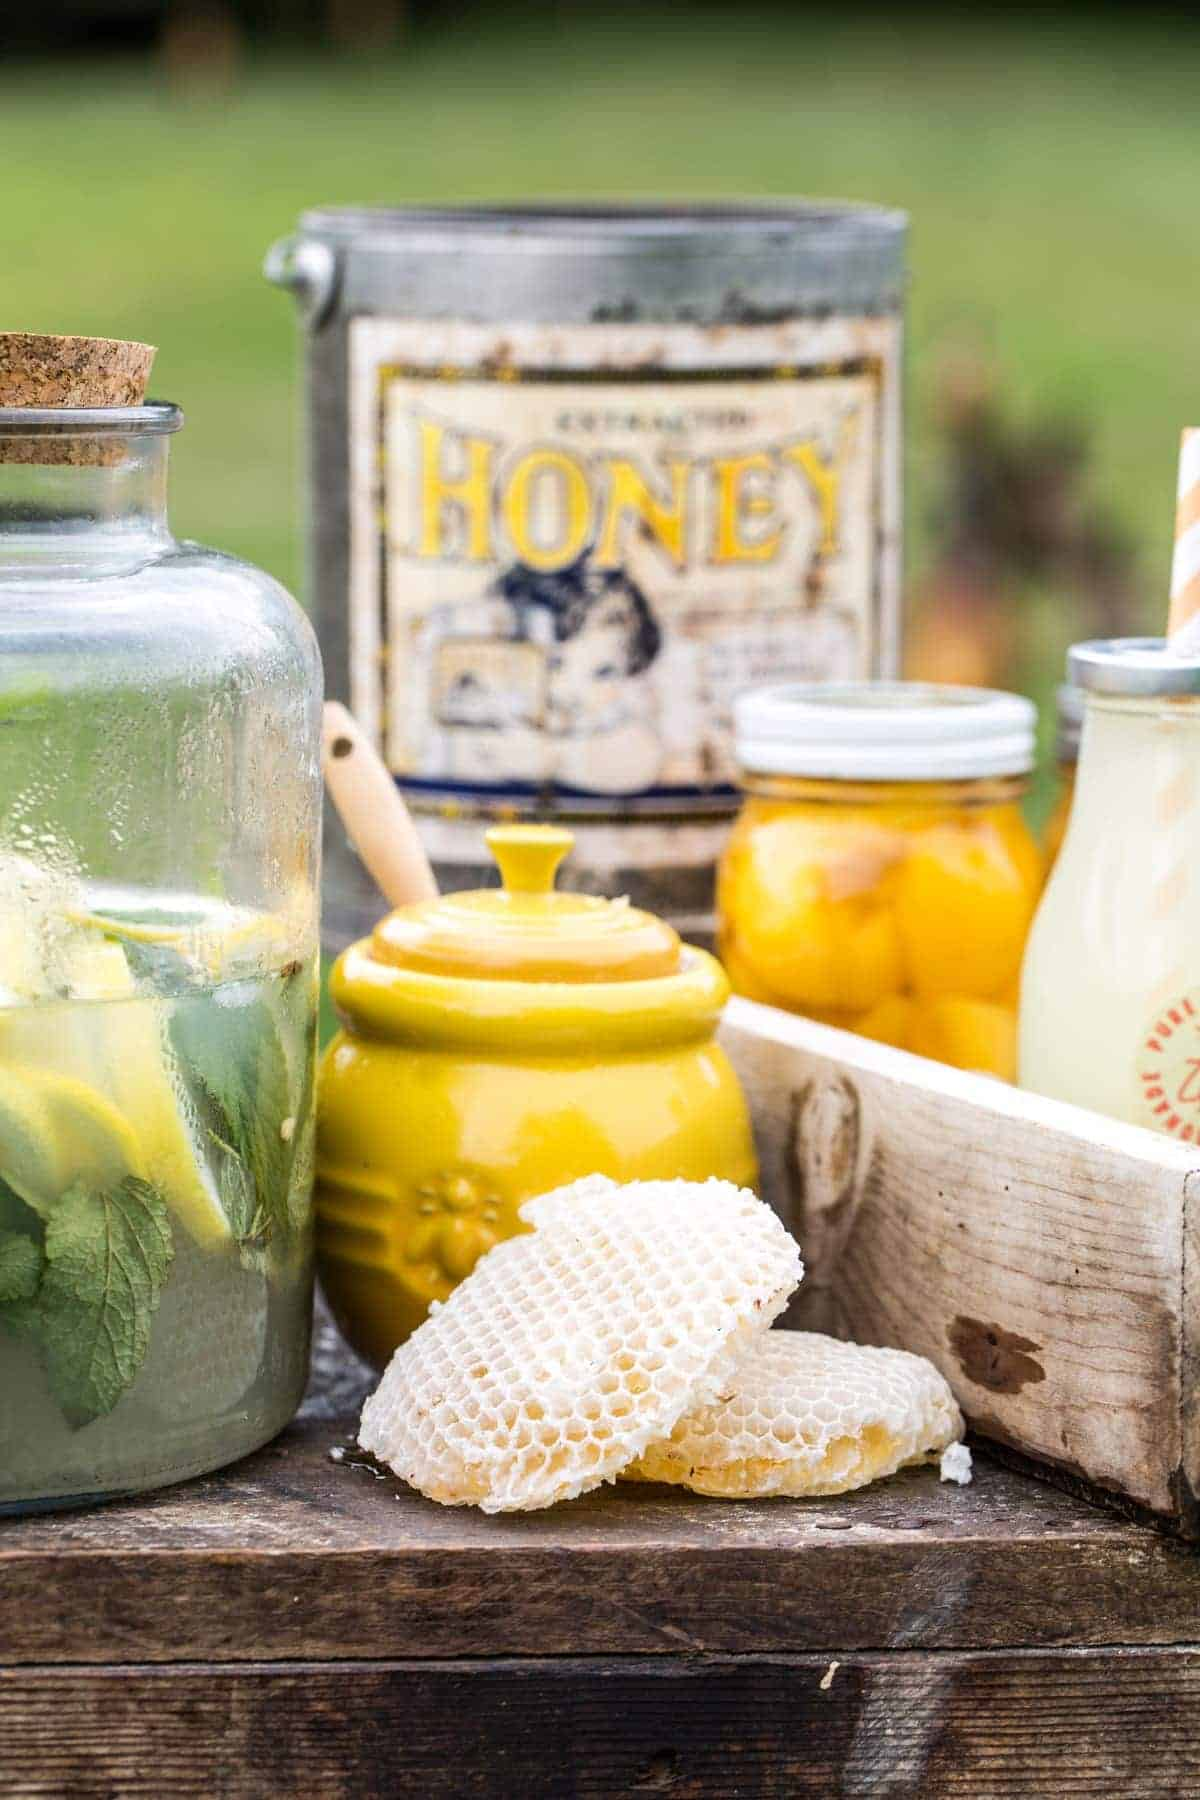 Lifestyle Bee Farm - Honey Mint Peach Lemonade Recipe - Kids Lemonade Stand - Jena Carlin Photography - Little Rusted Ladle - Web-20